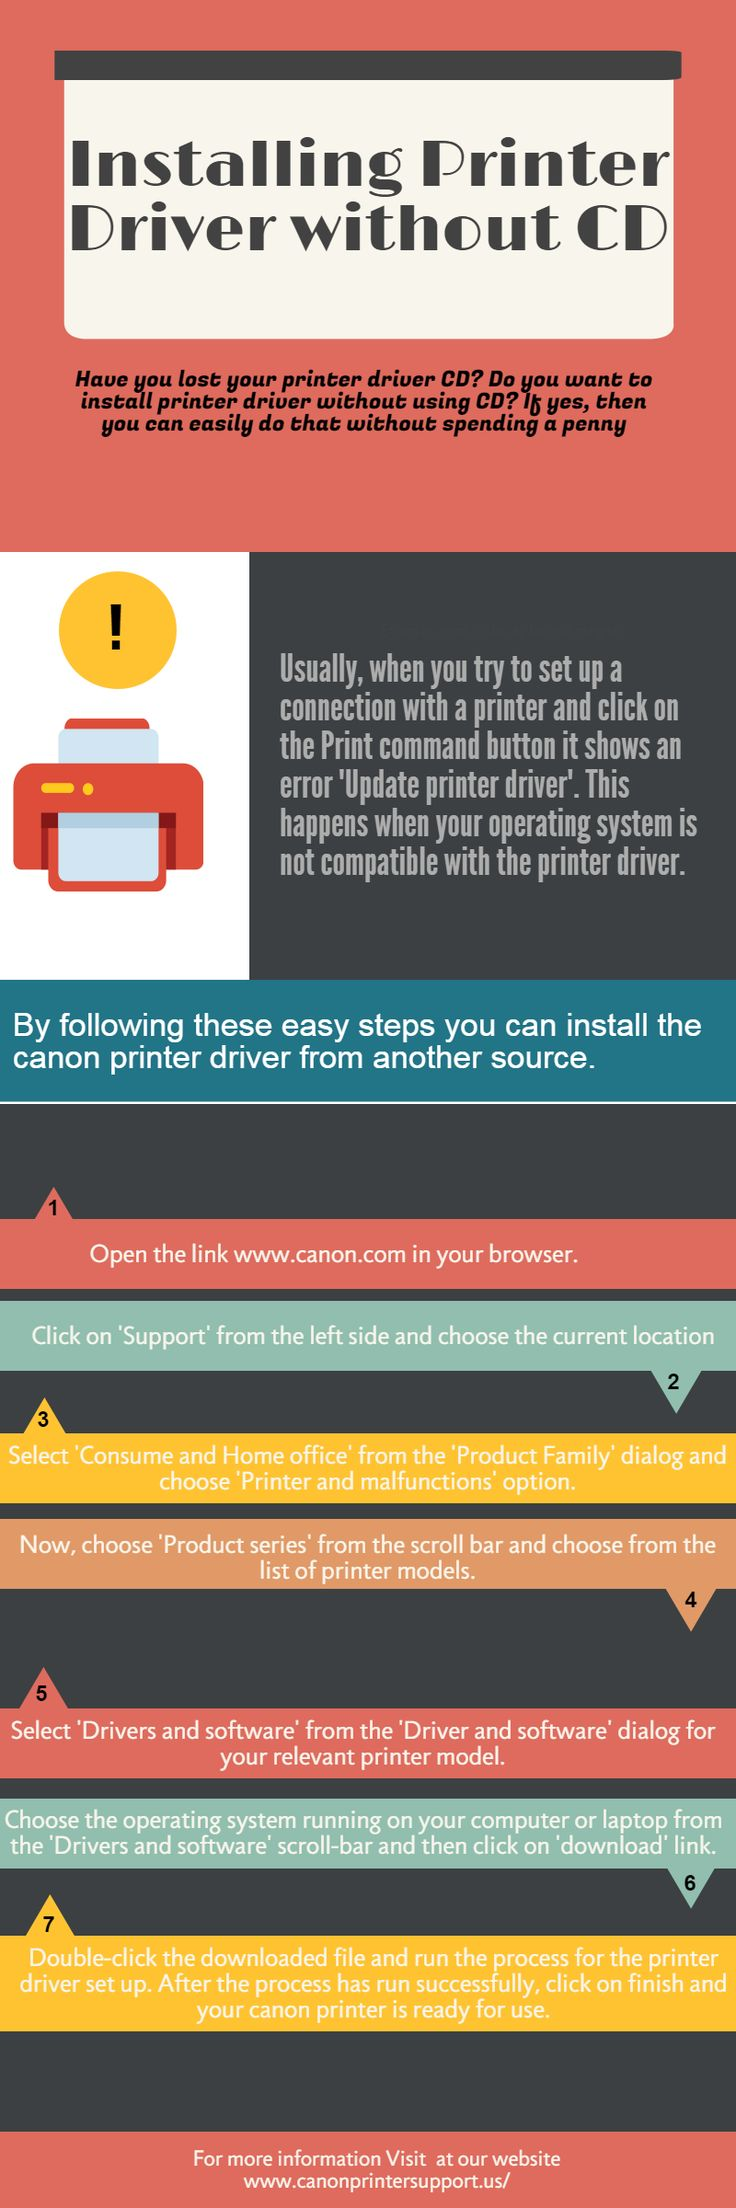 Now you don't need to worry about how to install printer driver after loosing printer driver CD. Using this infographics you will easily able to install the driver of your printer. canon printer support always here to help our customer in any situation. Get canon printer technical support on call with our expert at toll free number 1-800-243-1403. - See more at: http://visual.ly/installing-printer-driver-without-cd-canon-printer-technical-support#sthash.IjOh6fMW.dpuf